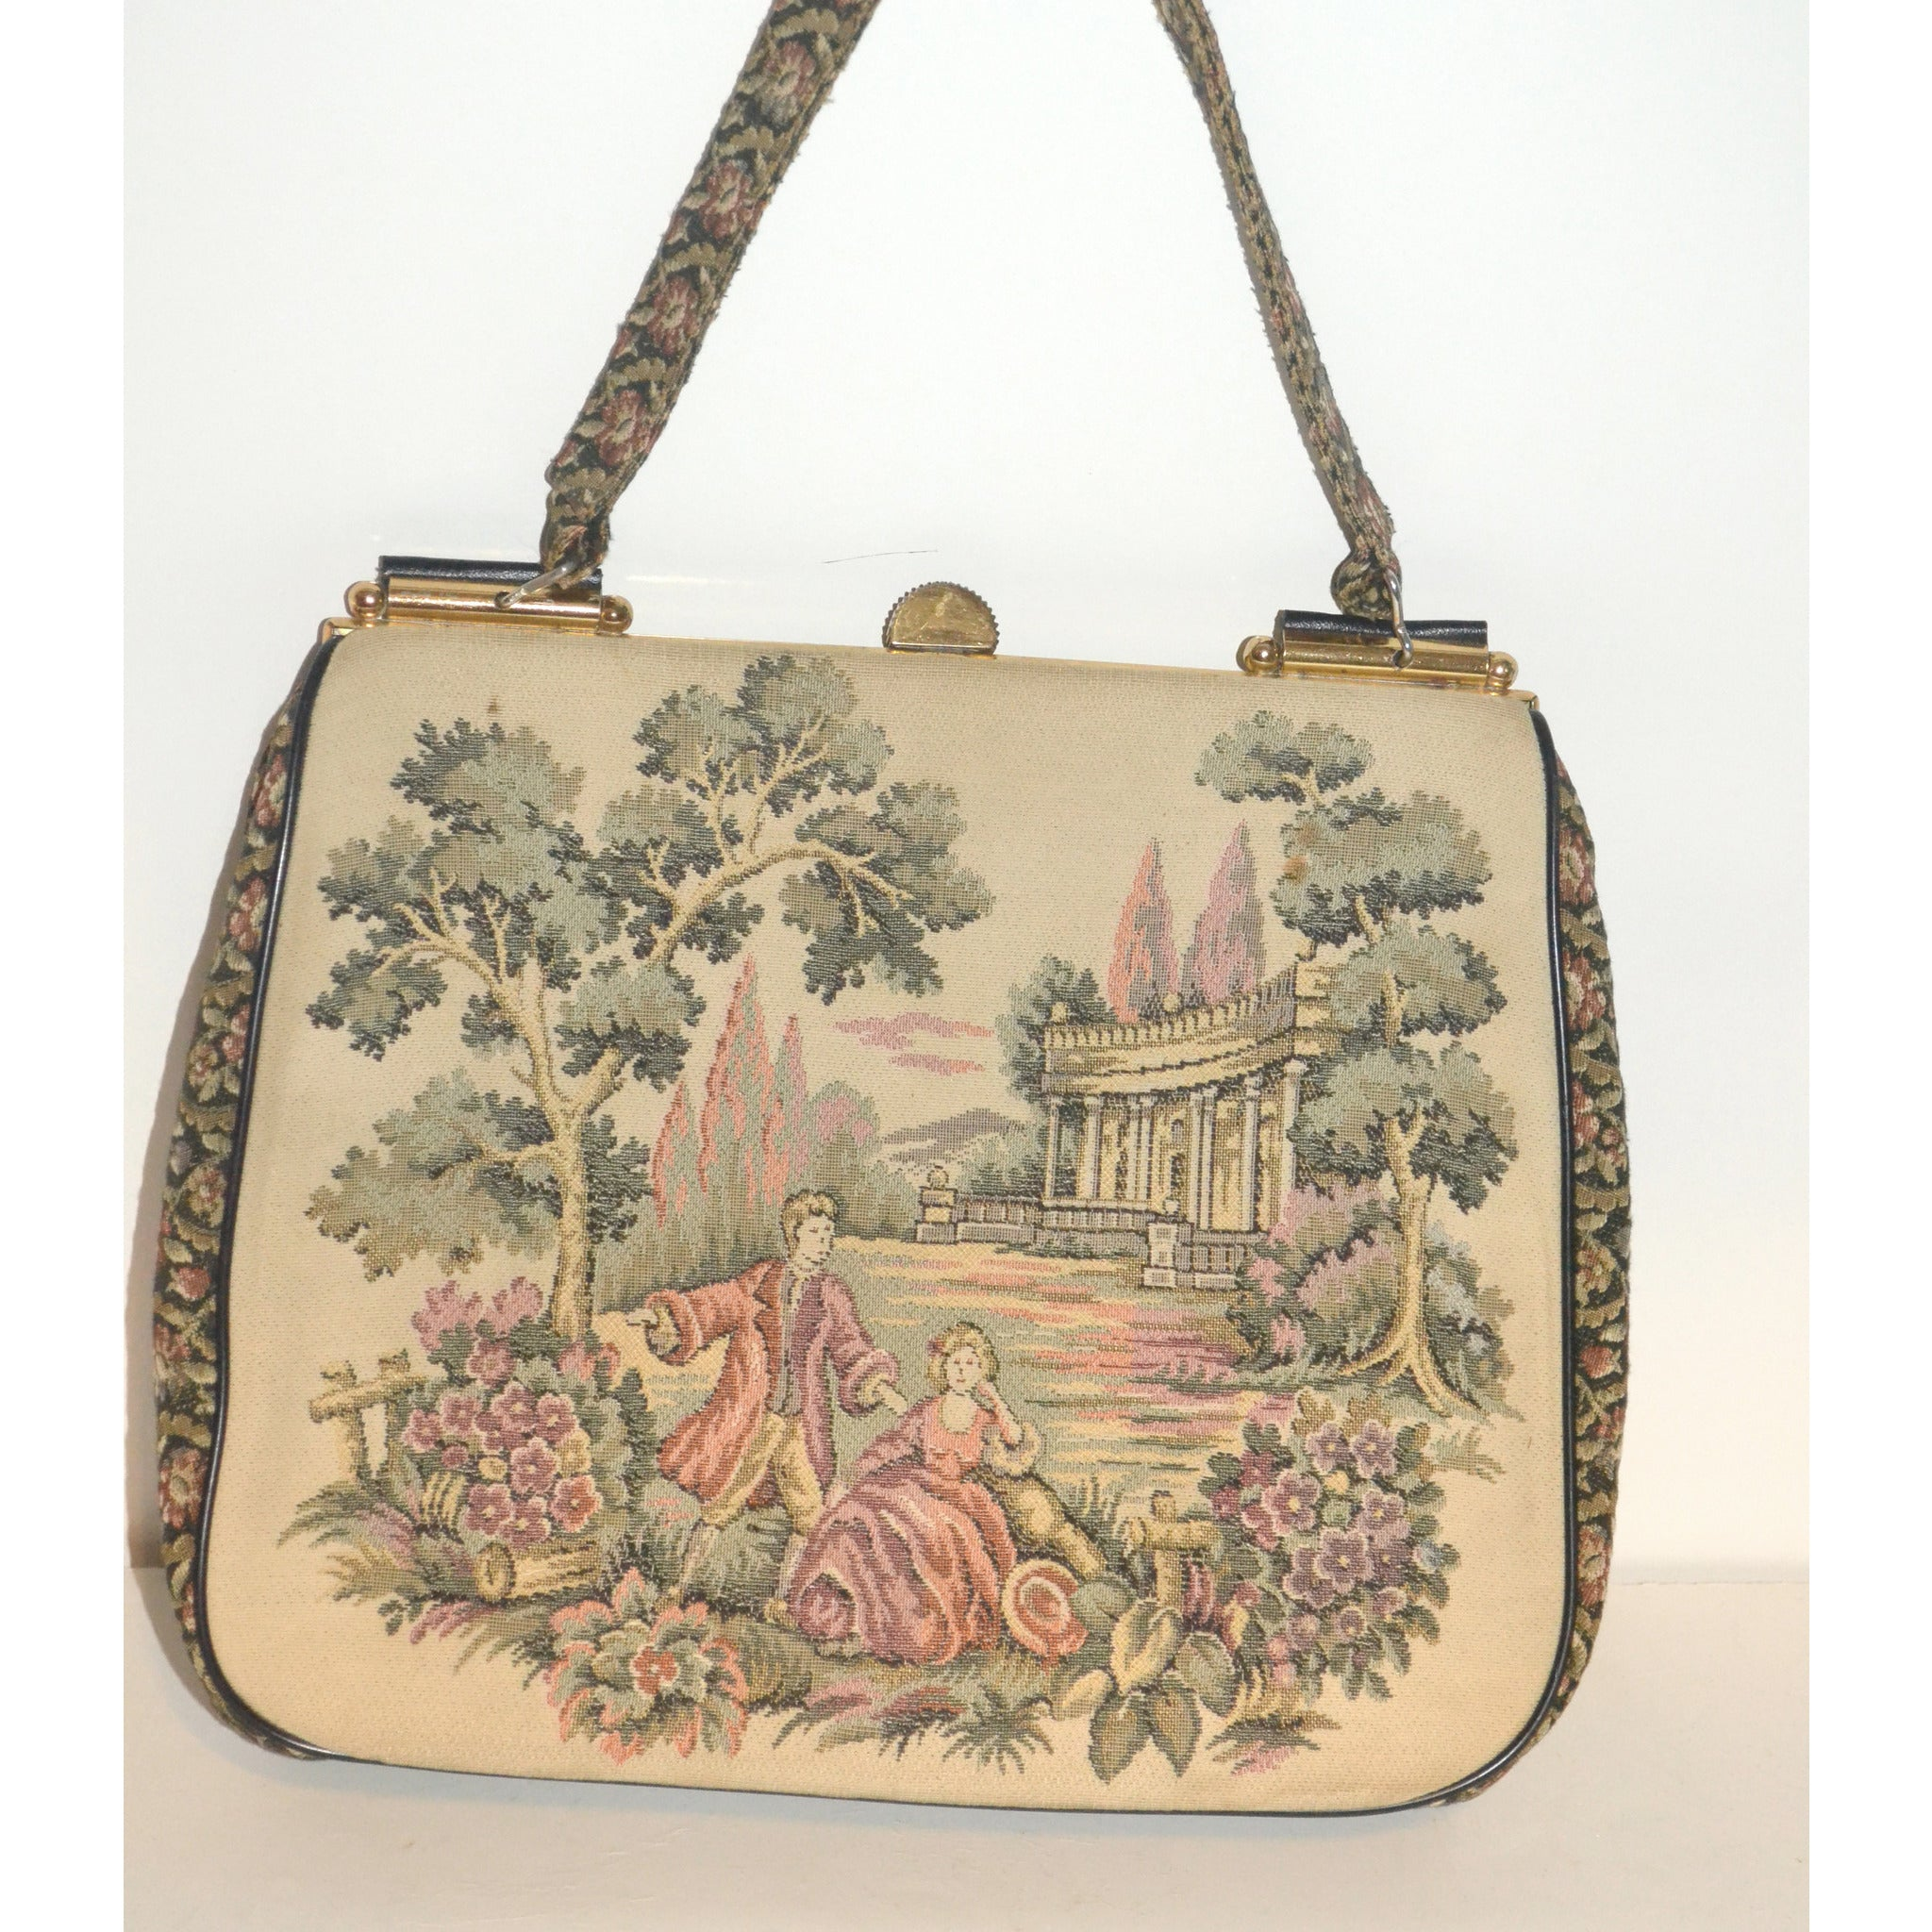 Vintage Italian Tapestry Purse By La Marquise